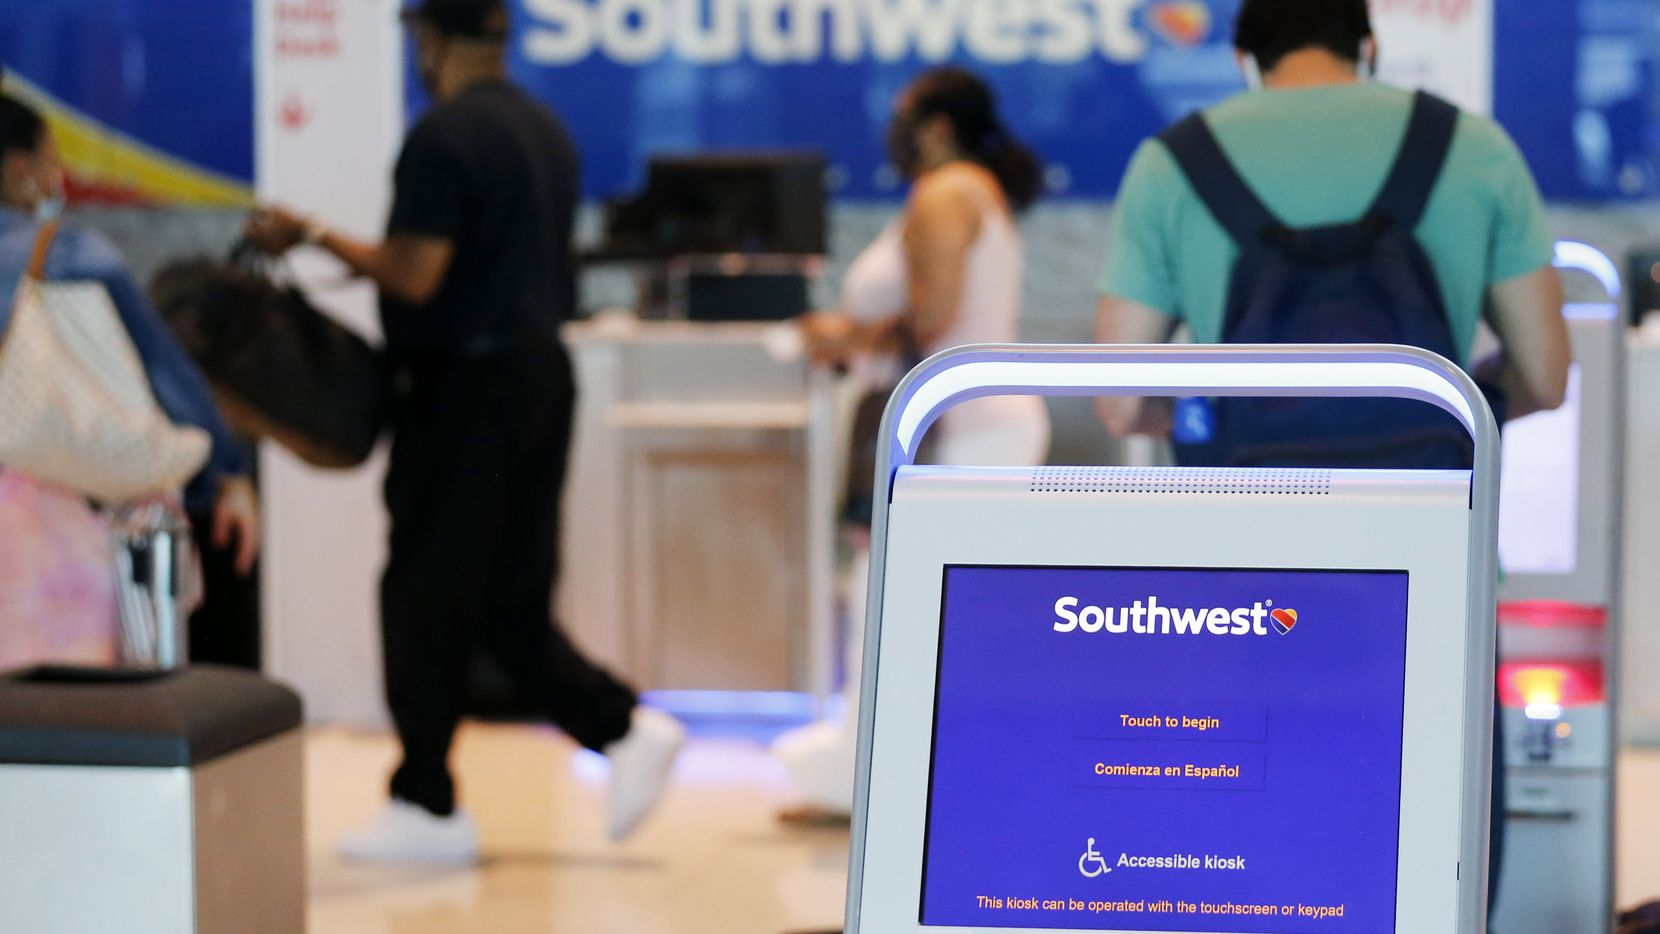 Southwest Airlines passengers prepare to check their baggage at Dallas Love Field Airport in Dallas, on Monday, July 20, 2020. (Vernon Bryant/The Dallas Morning News)